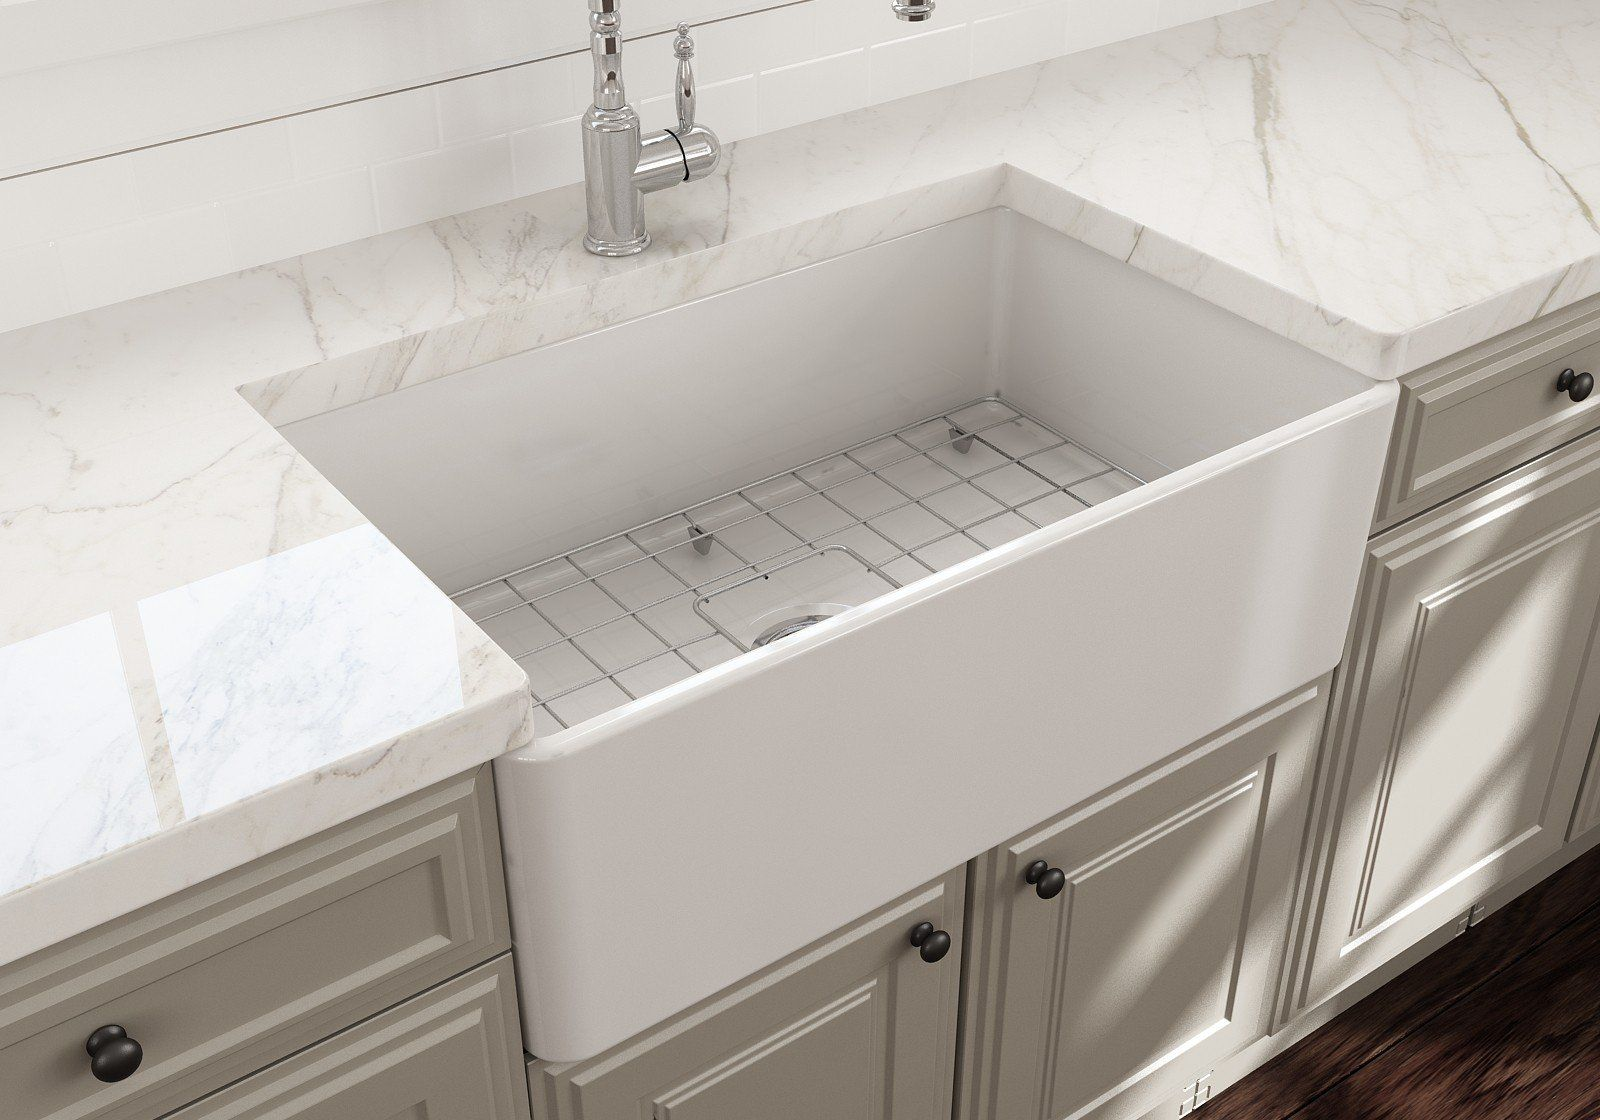 Randolph Morris 30 Inch Double Bowl Farmhouse Sink With Chrome Drain And  Grid. Includes: Sink, Chrome Sink Grid And Chrome Drain. Manufactured In  Europe.